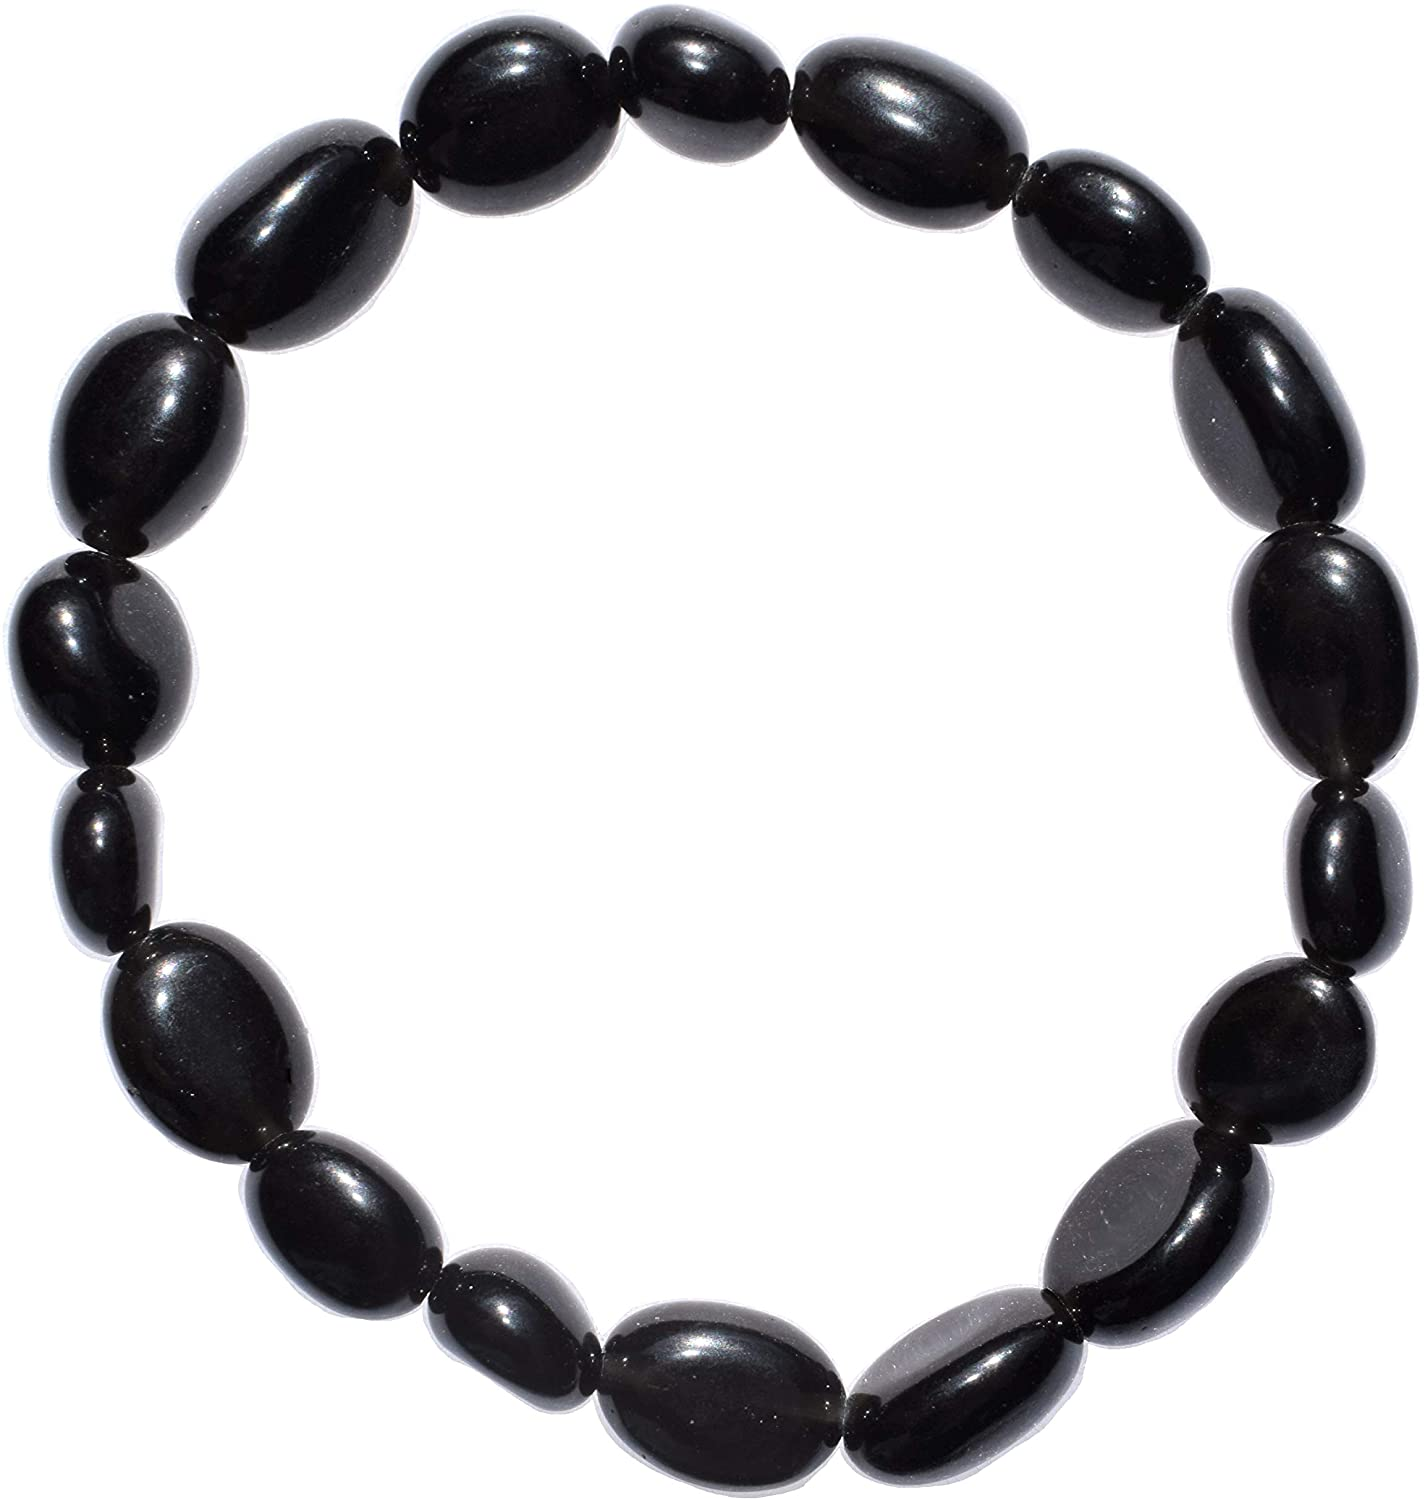 Zenergy Gems Charged Natural Black Obsidian Crystal Bracelet Tumble Polished Stretchy + Selenite Heart Charging Crystal Included (Healing Energy/GROUNDING/Grieving Bracelet)